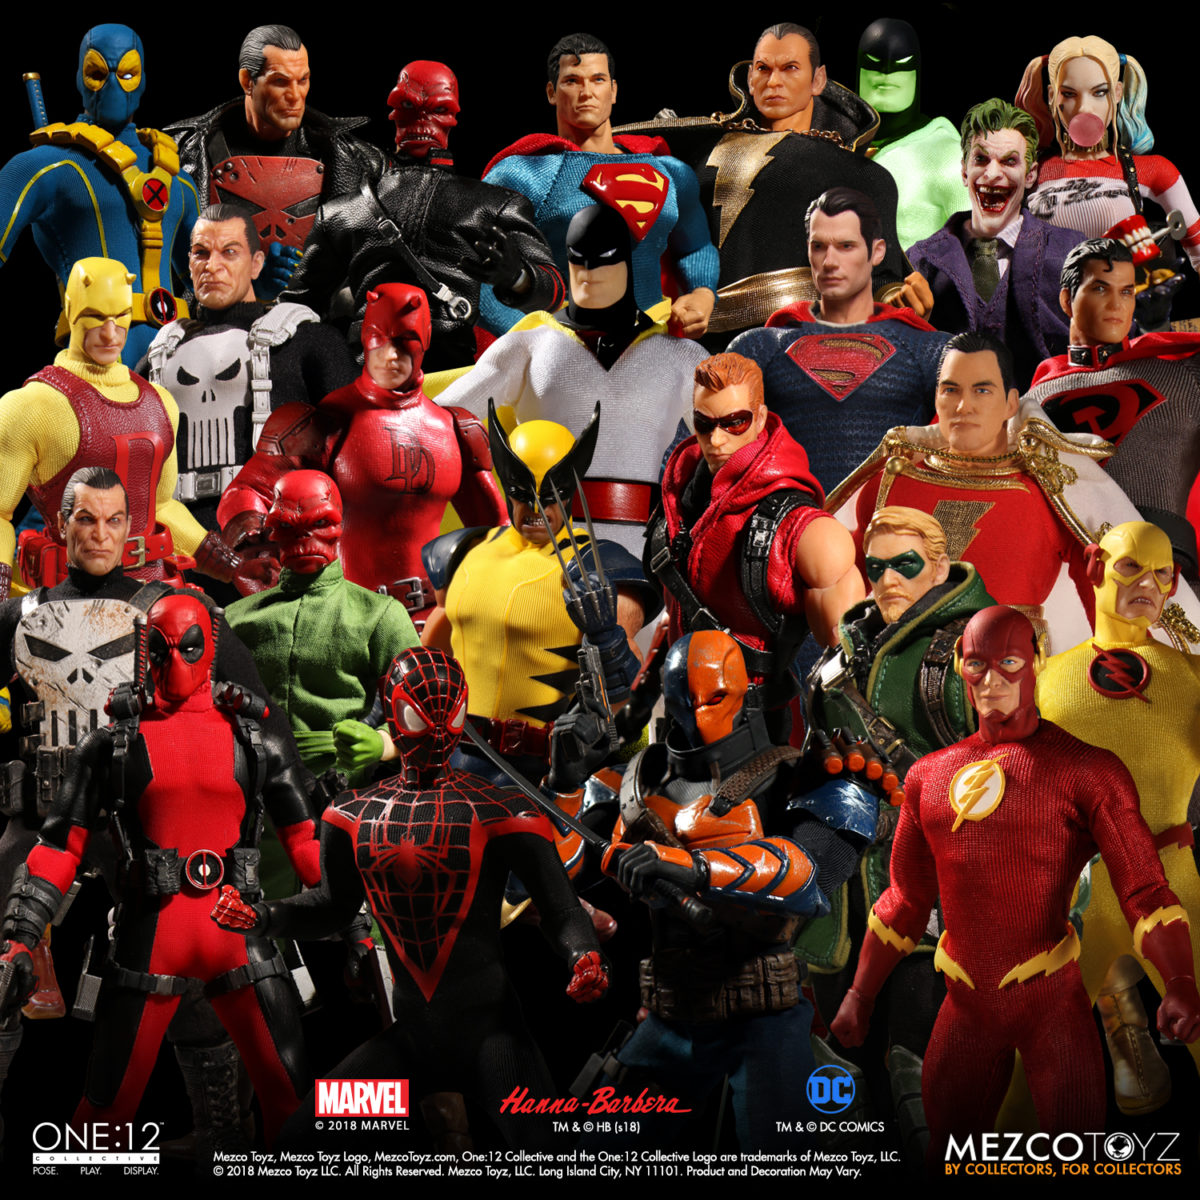 the-One-12-Collective-Mezco-Toys-Edicollector